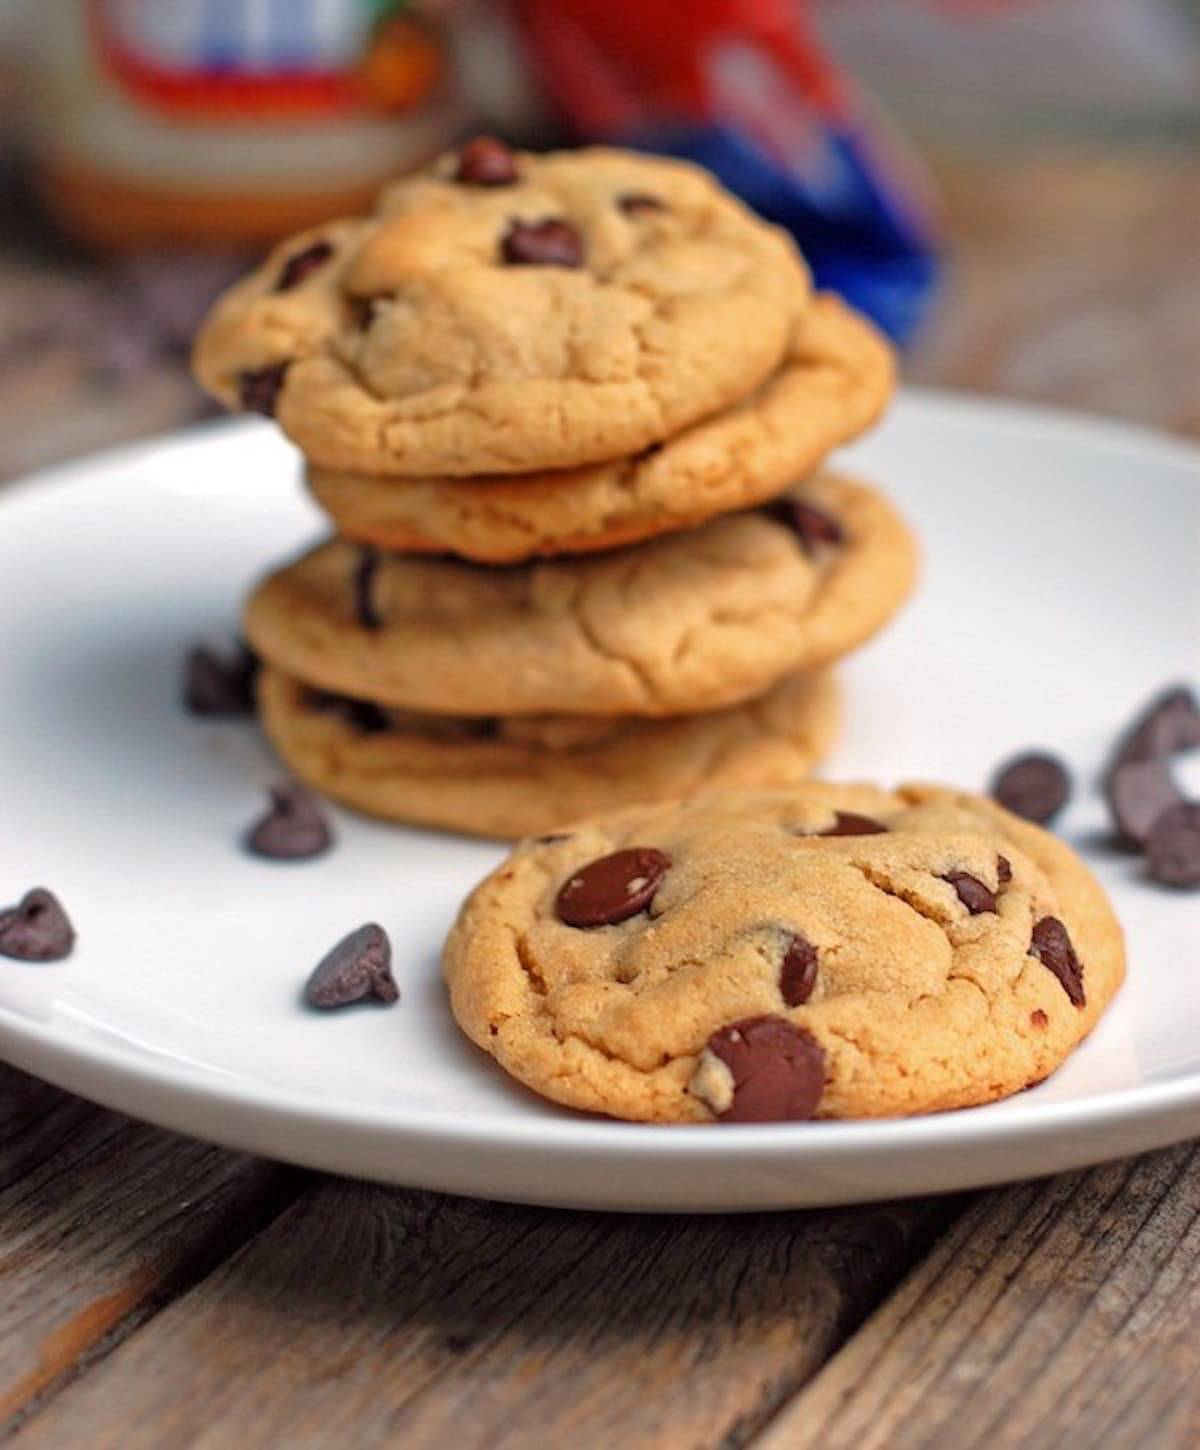 Peanut Butter Chocolate Chip cookies on a plate with chocolate chips.